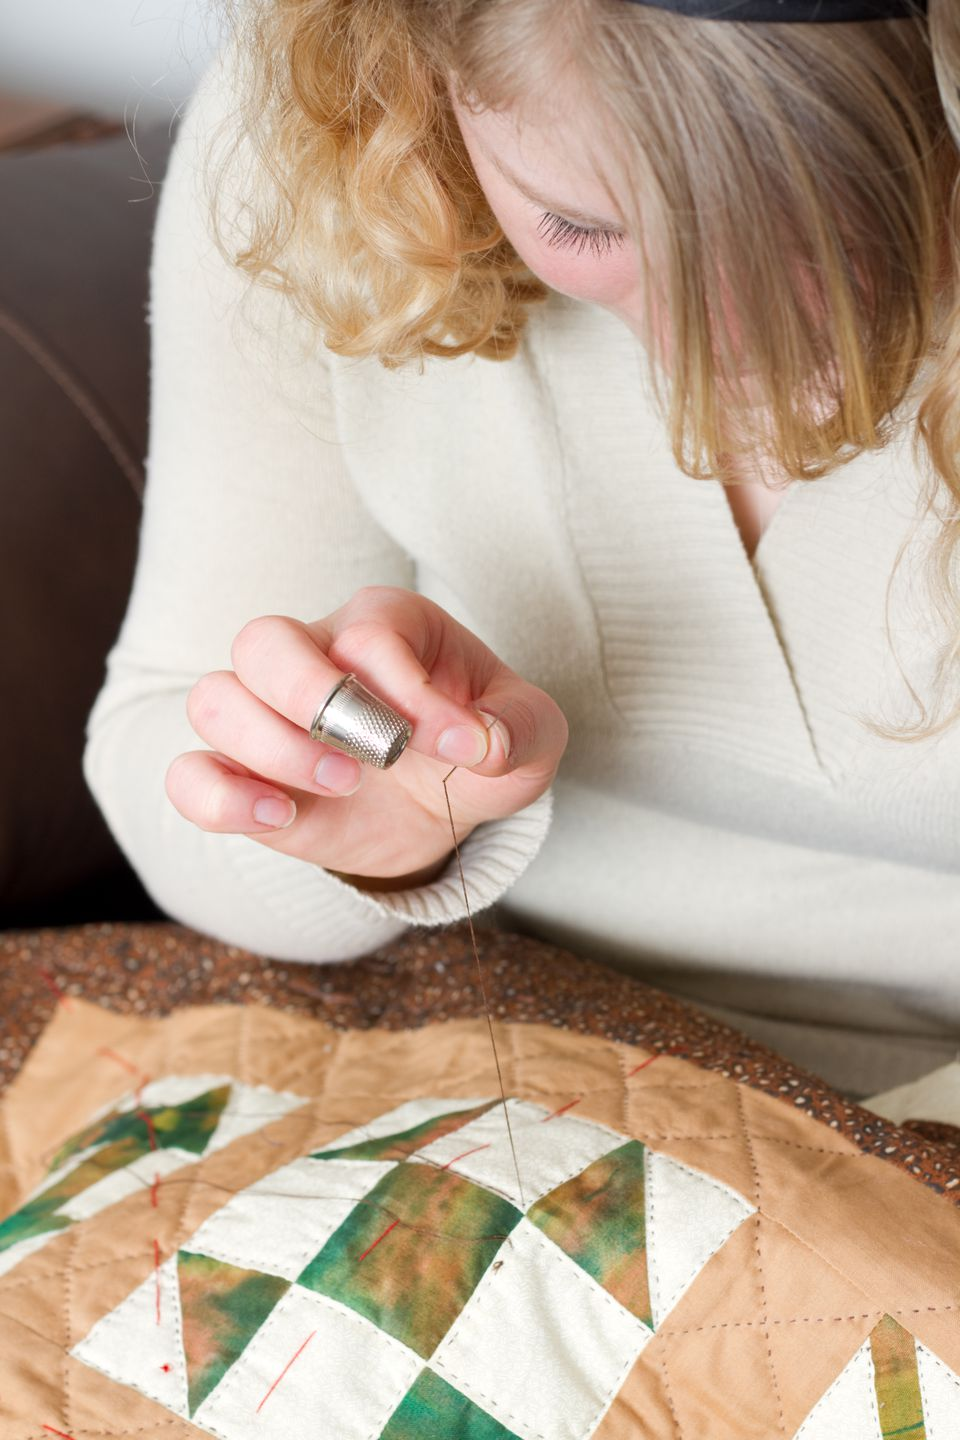 Young Woman Quilting